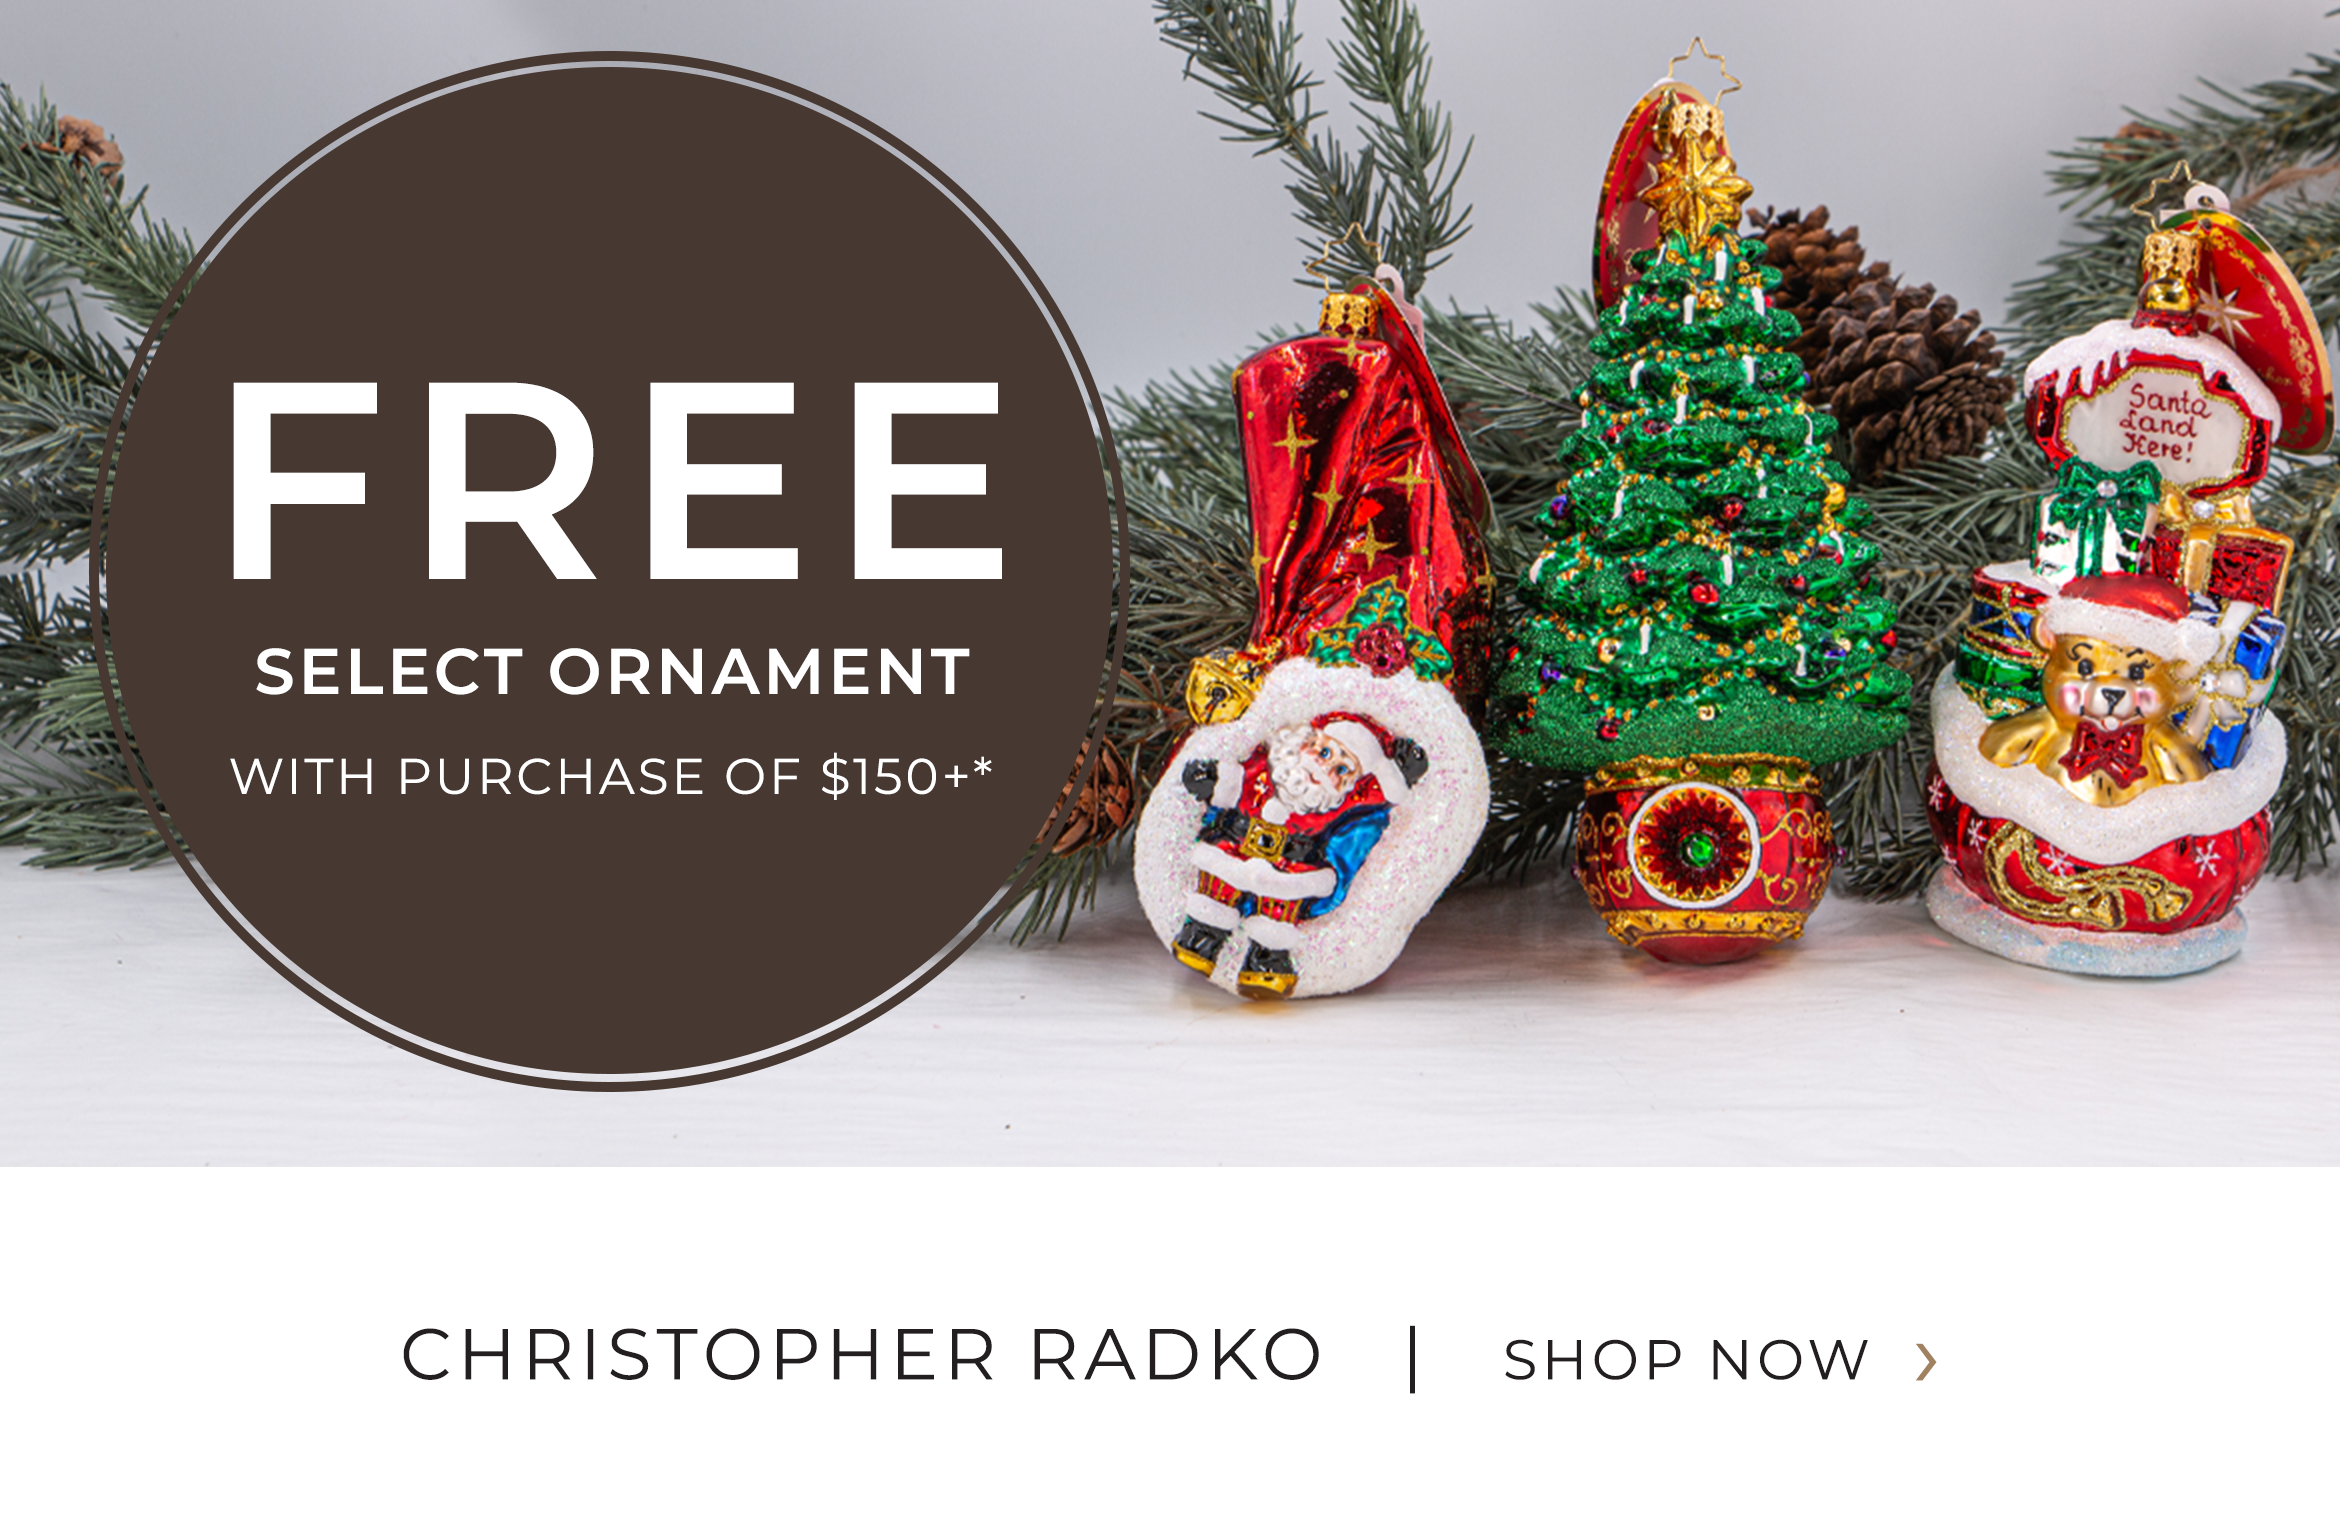 Christopher Radko - Free Select Ornament with purchase of $150